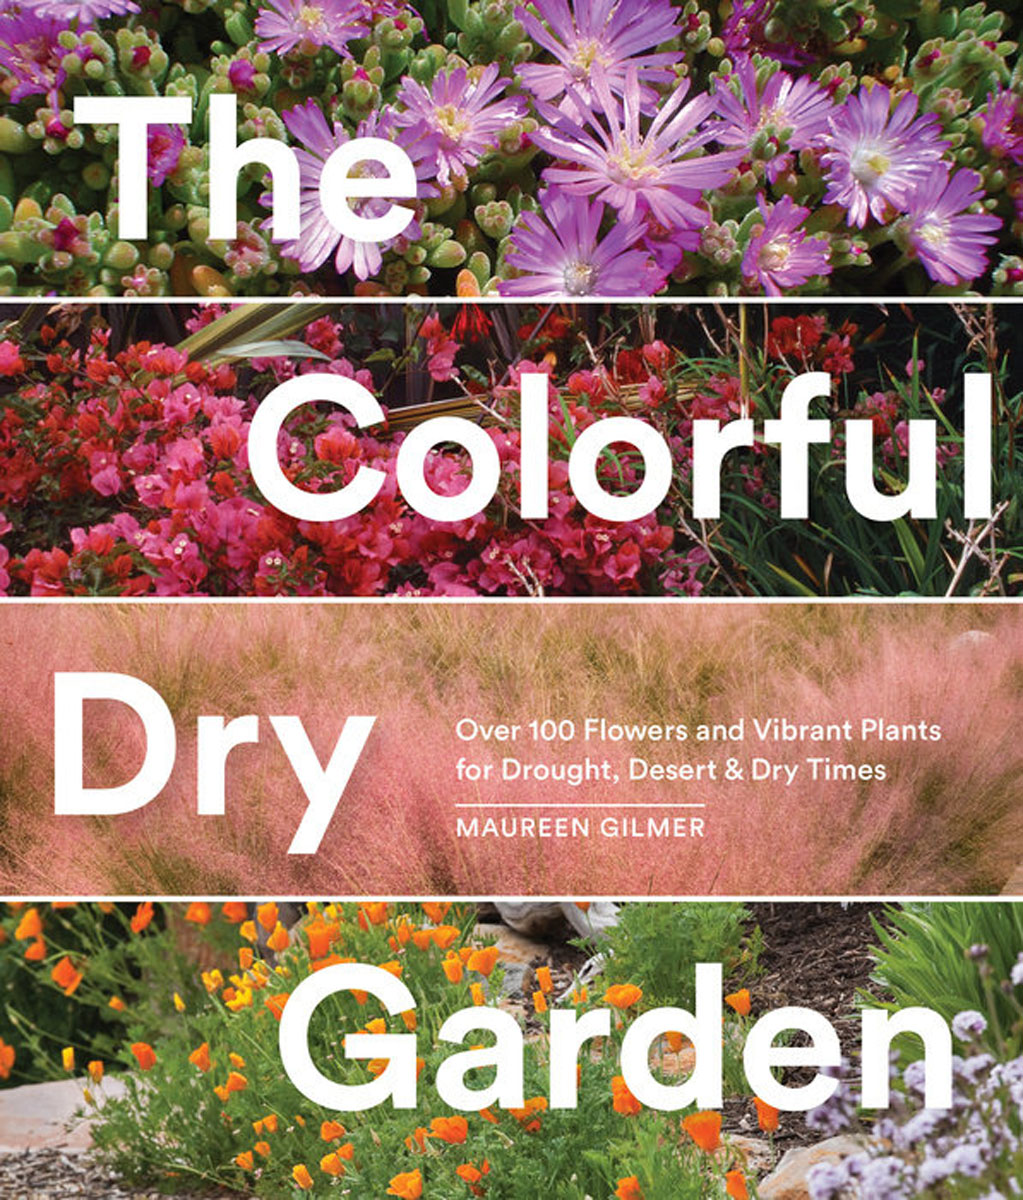 The Colorful Dry Garden spring in the garden flowers and seedlings